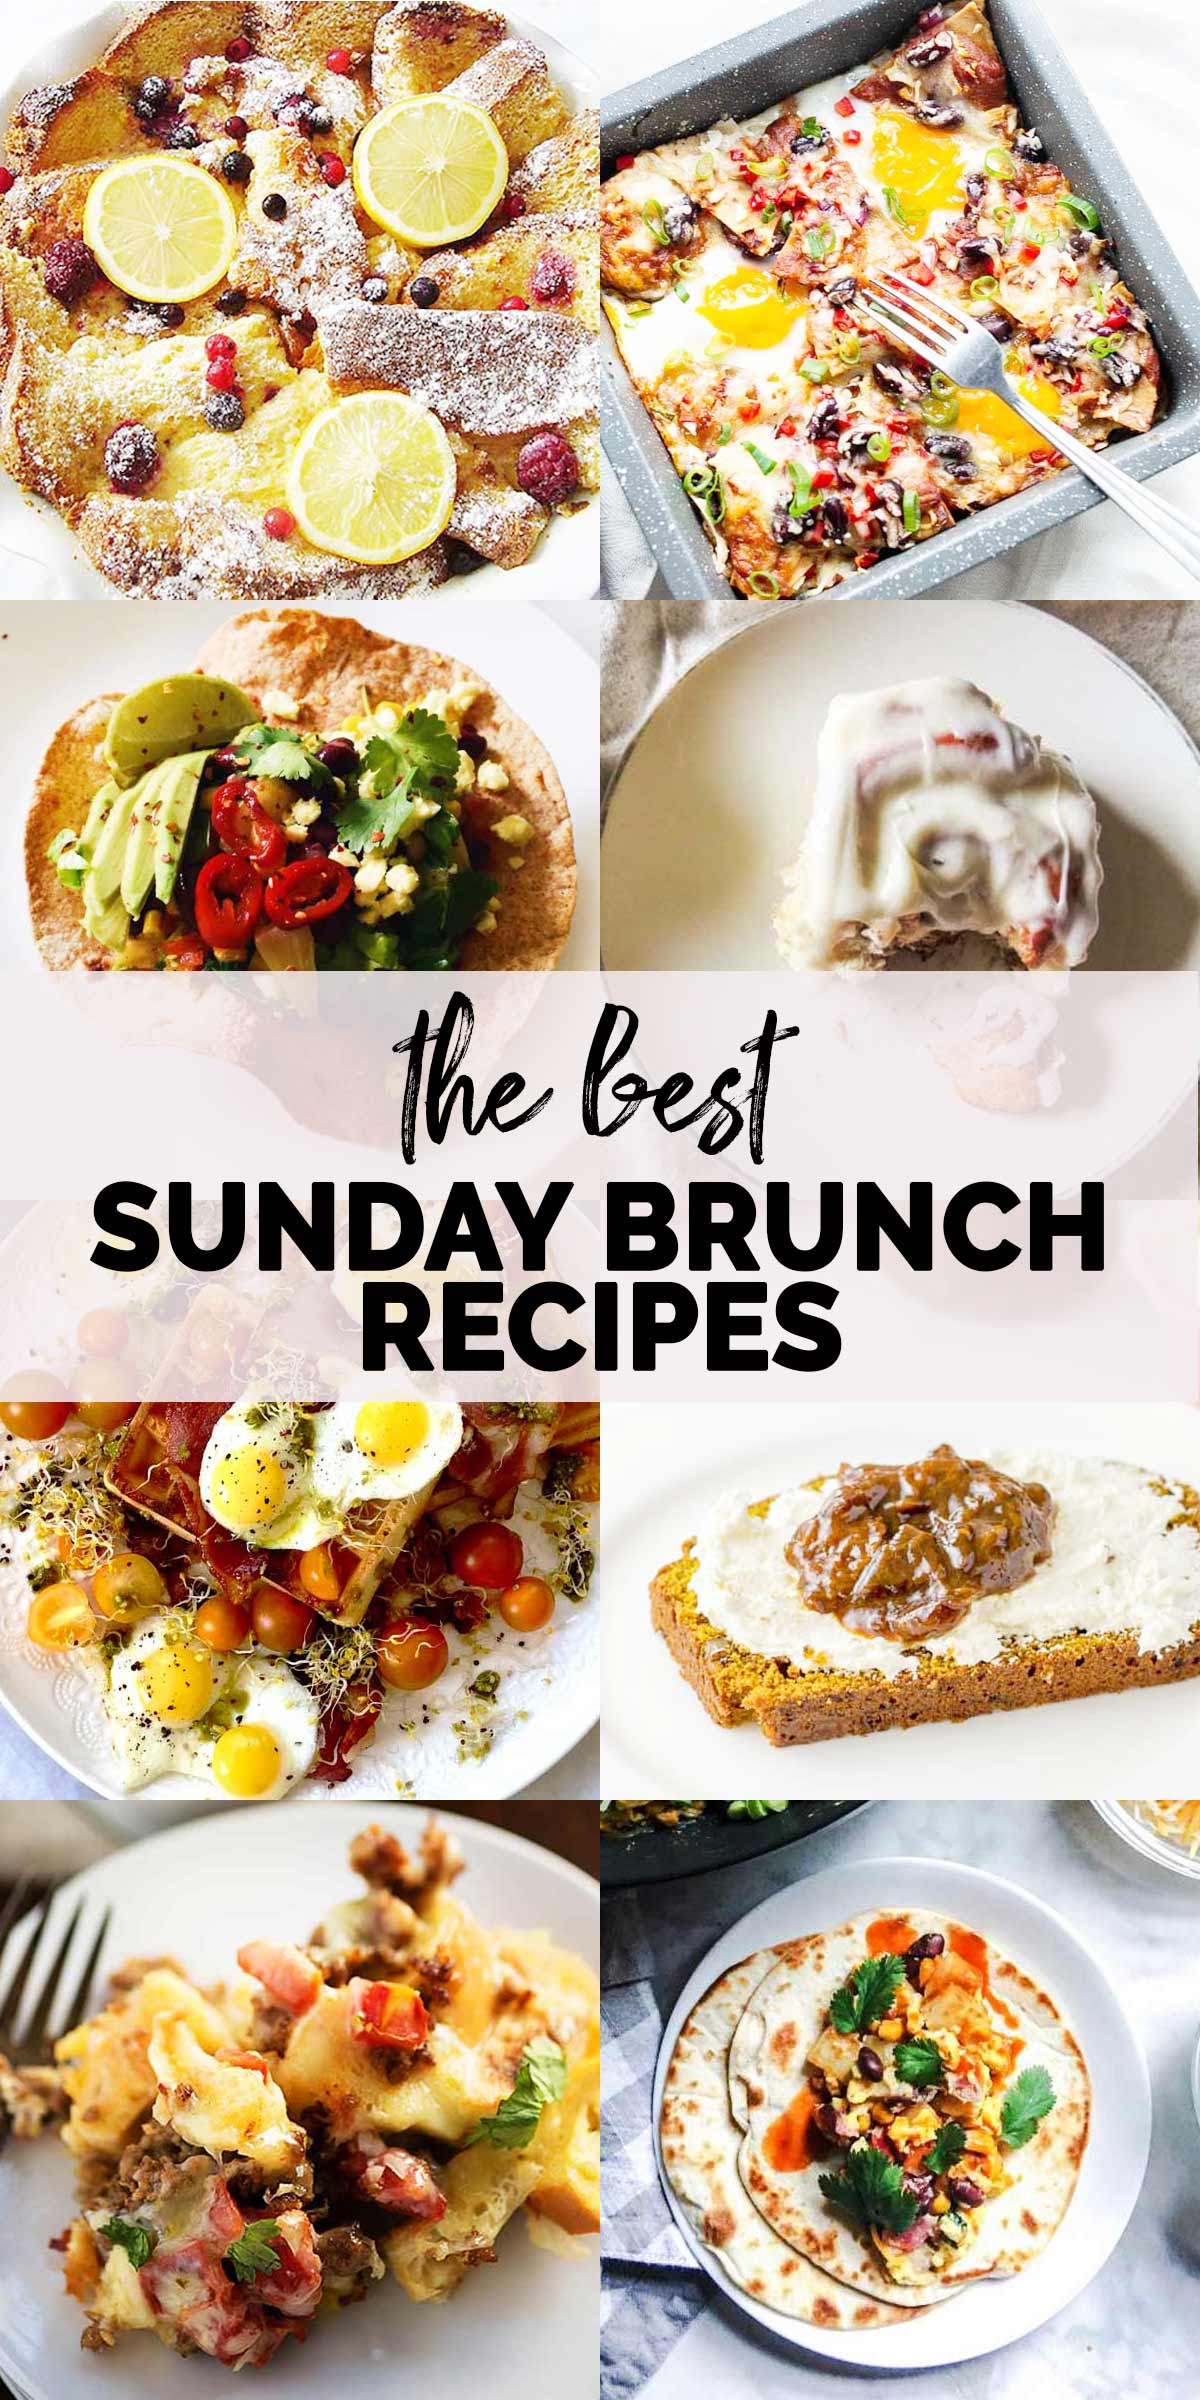 Easy delicious Sunday brunch recipes. Take a look at all these amazing recipe you can surprise your family and friends with. Sweet and savory recipes #thetortillachannel #brunch #brunchrecipes #eggrecipe #breakfastcasserole @panacottabake #cinnamonrolls